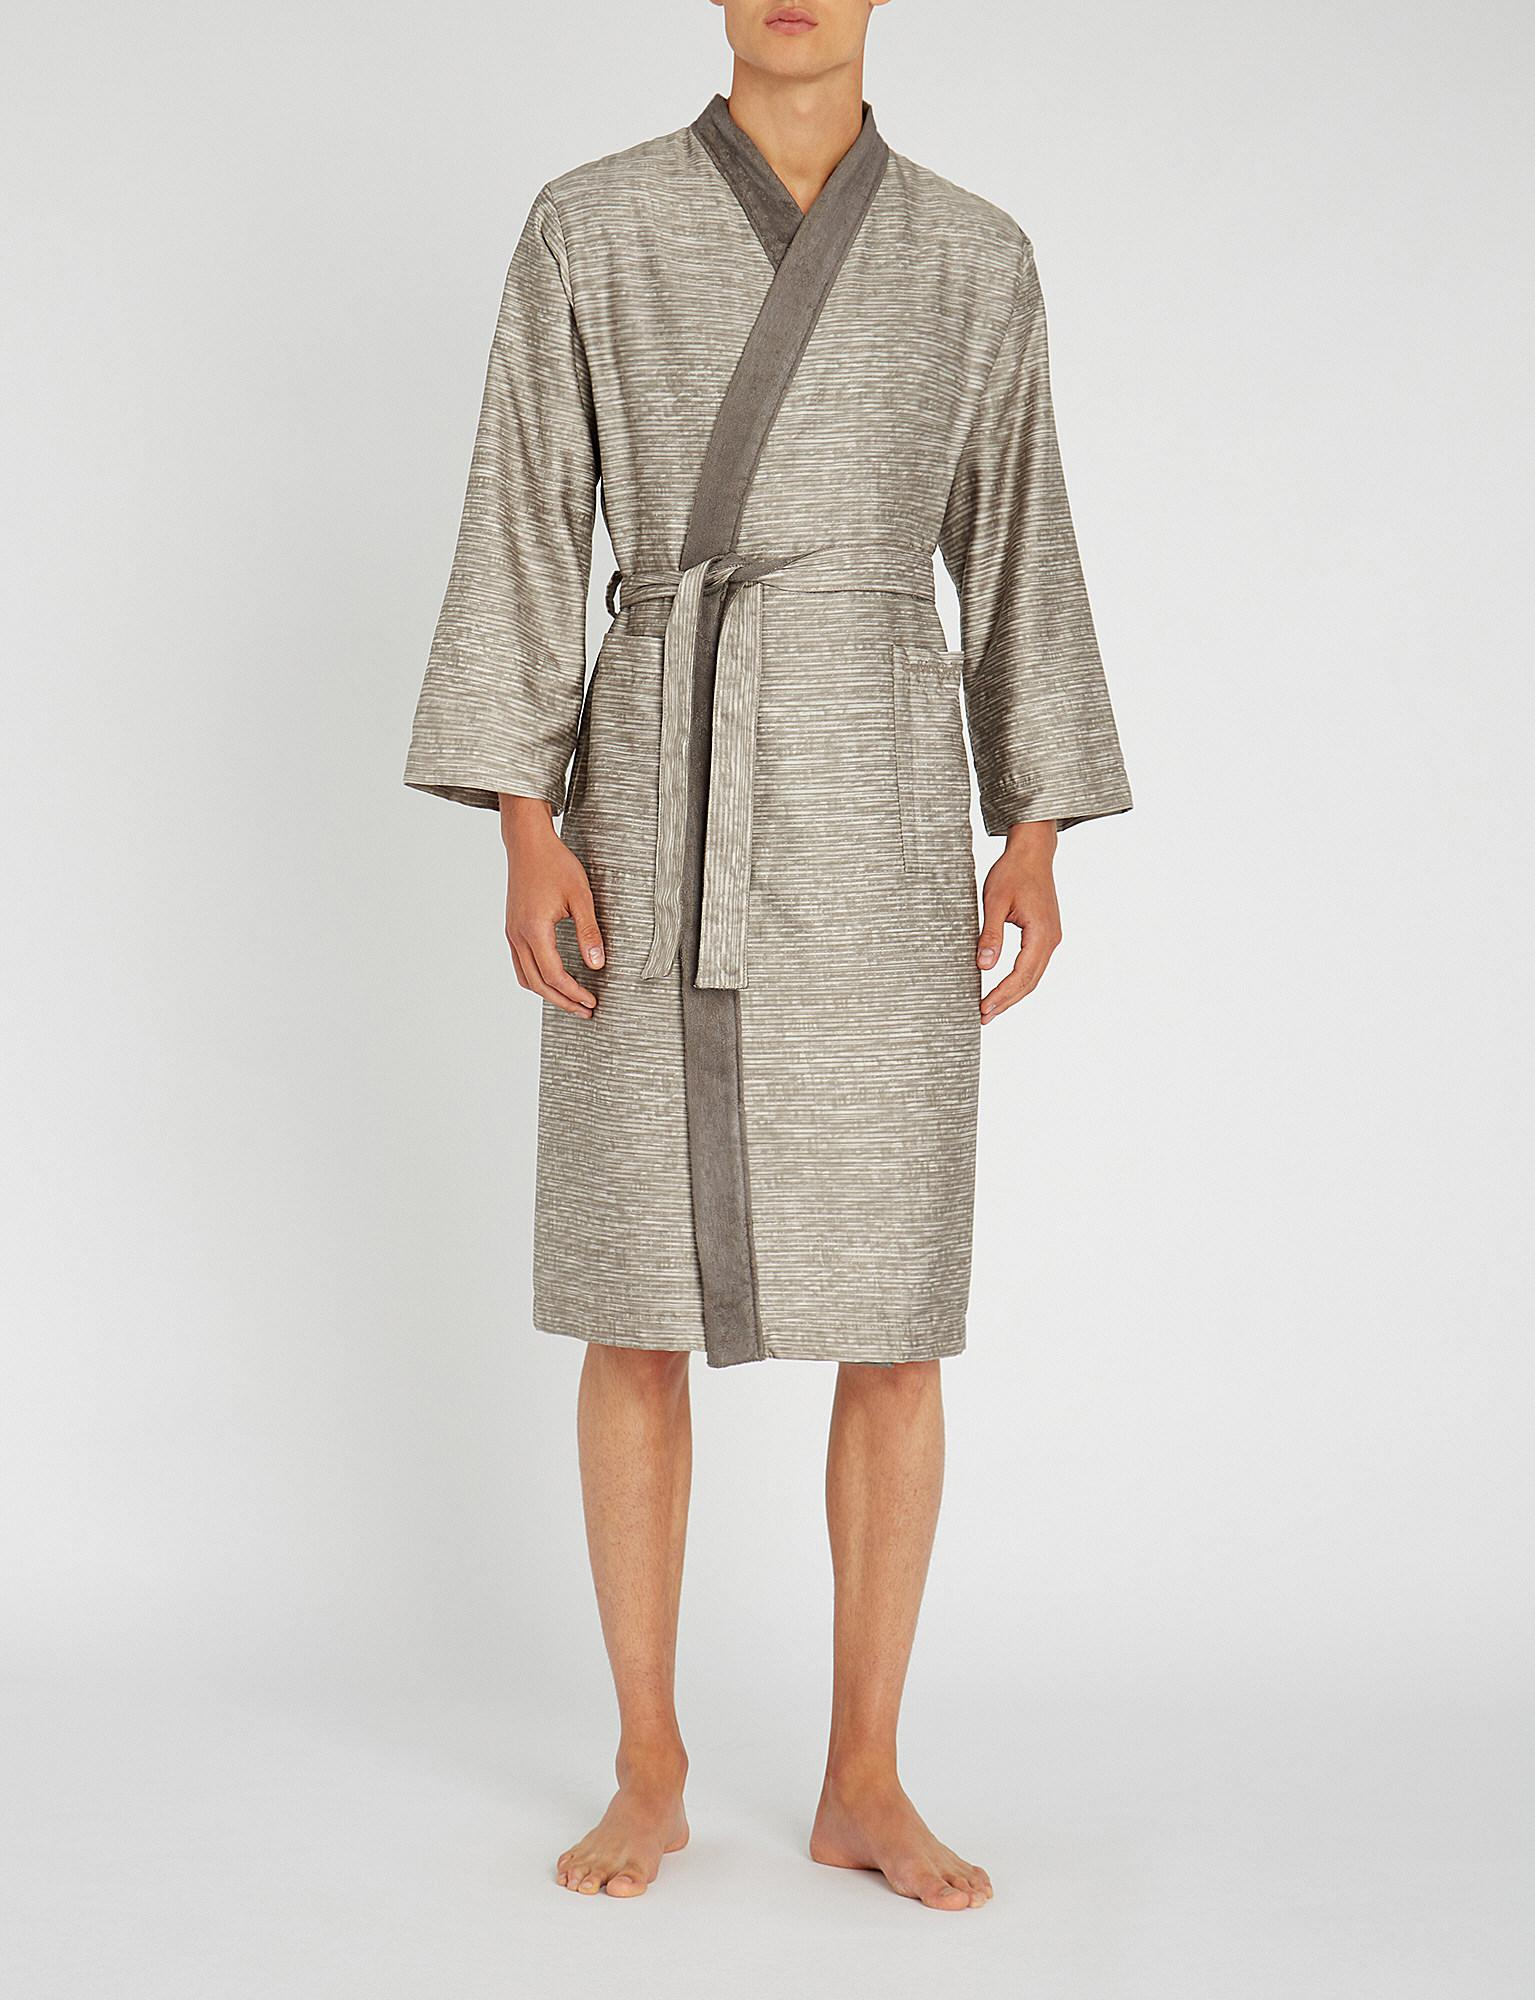 Lyst - Calvin Klein Acacia Striped Cotton Dressing Gown in Gray for Men